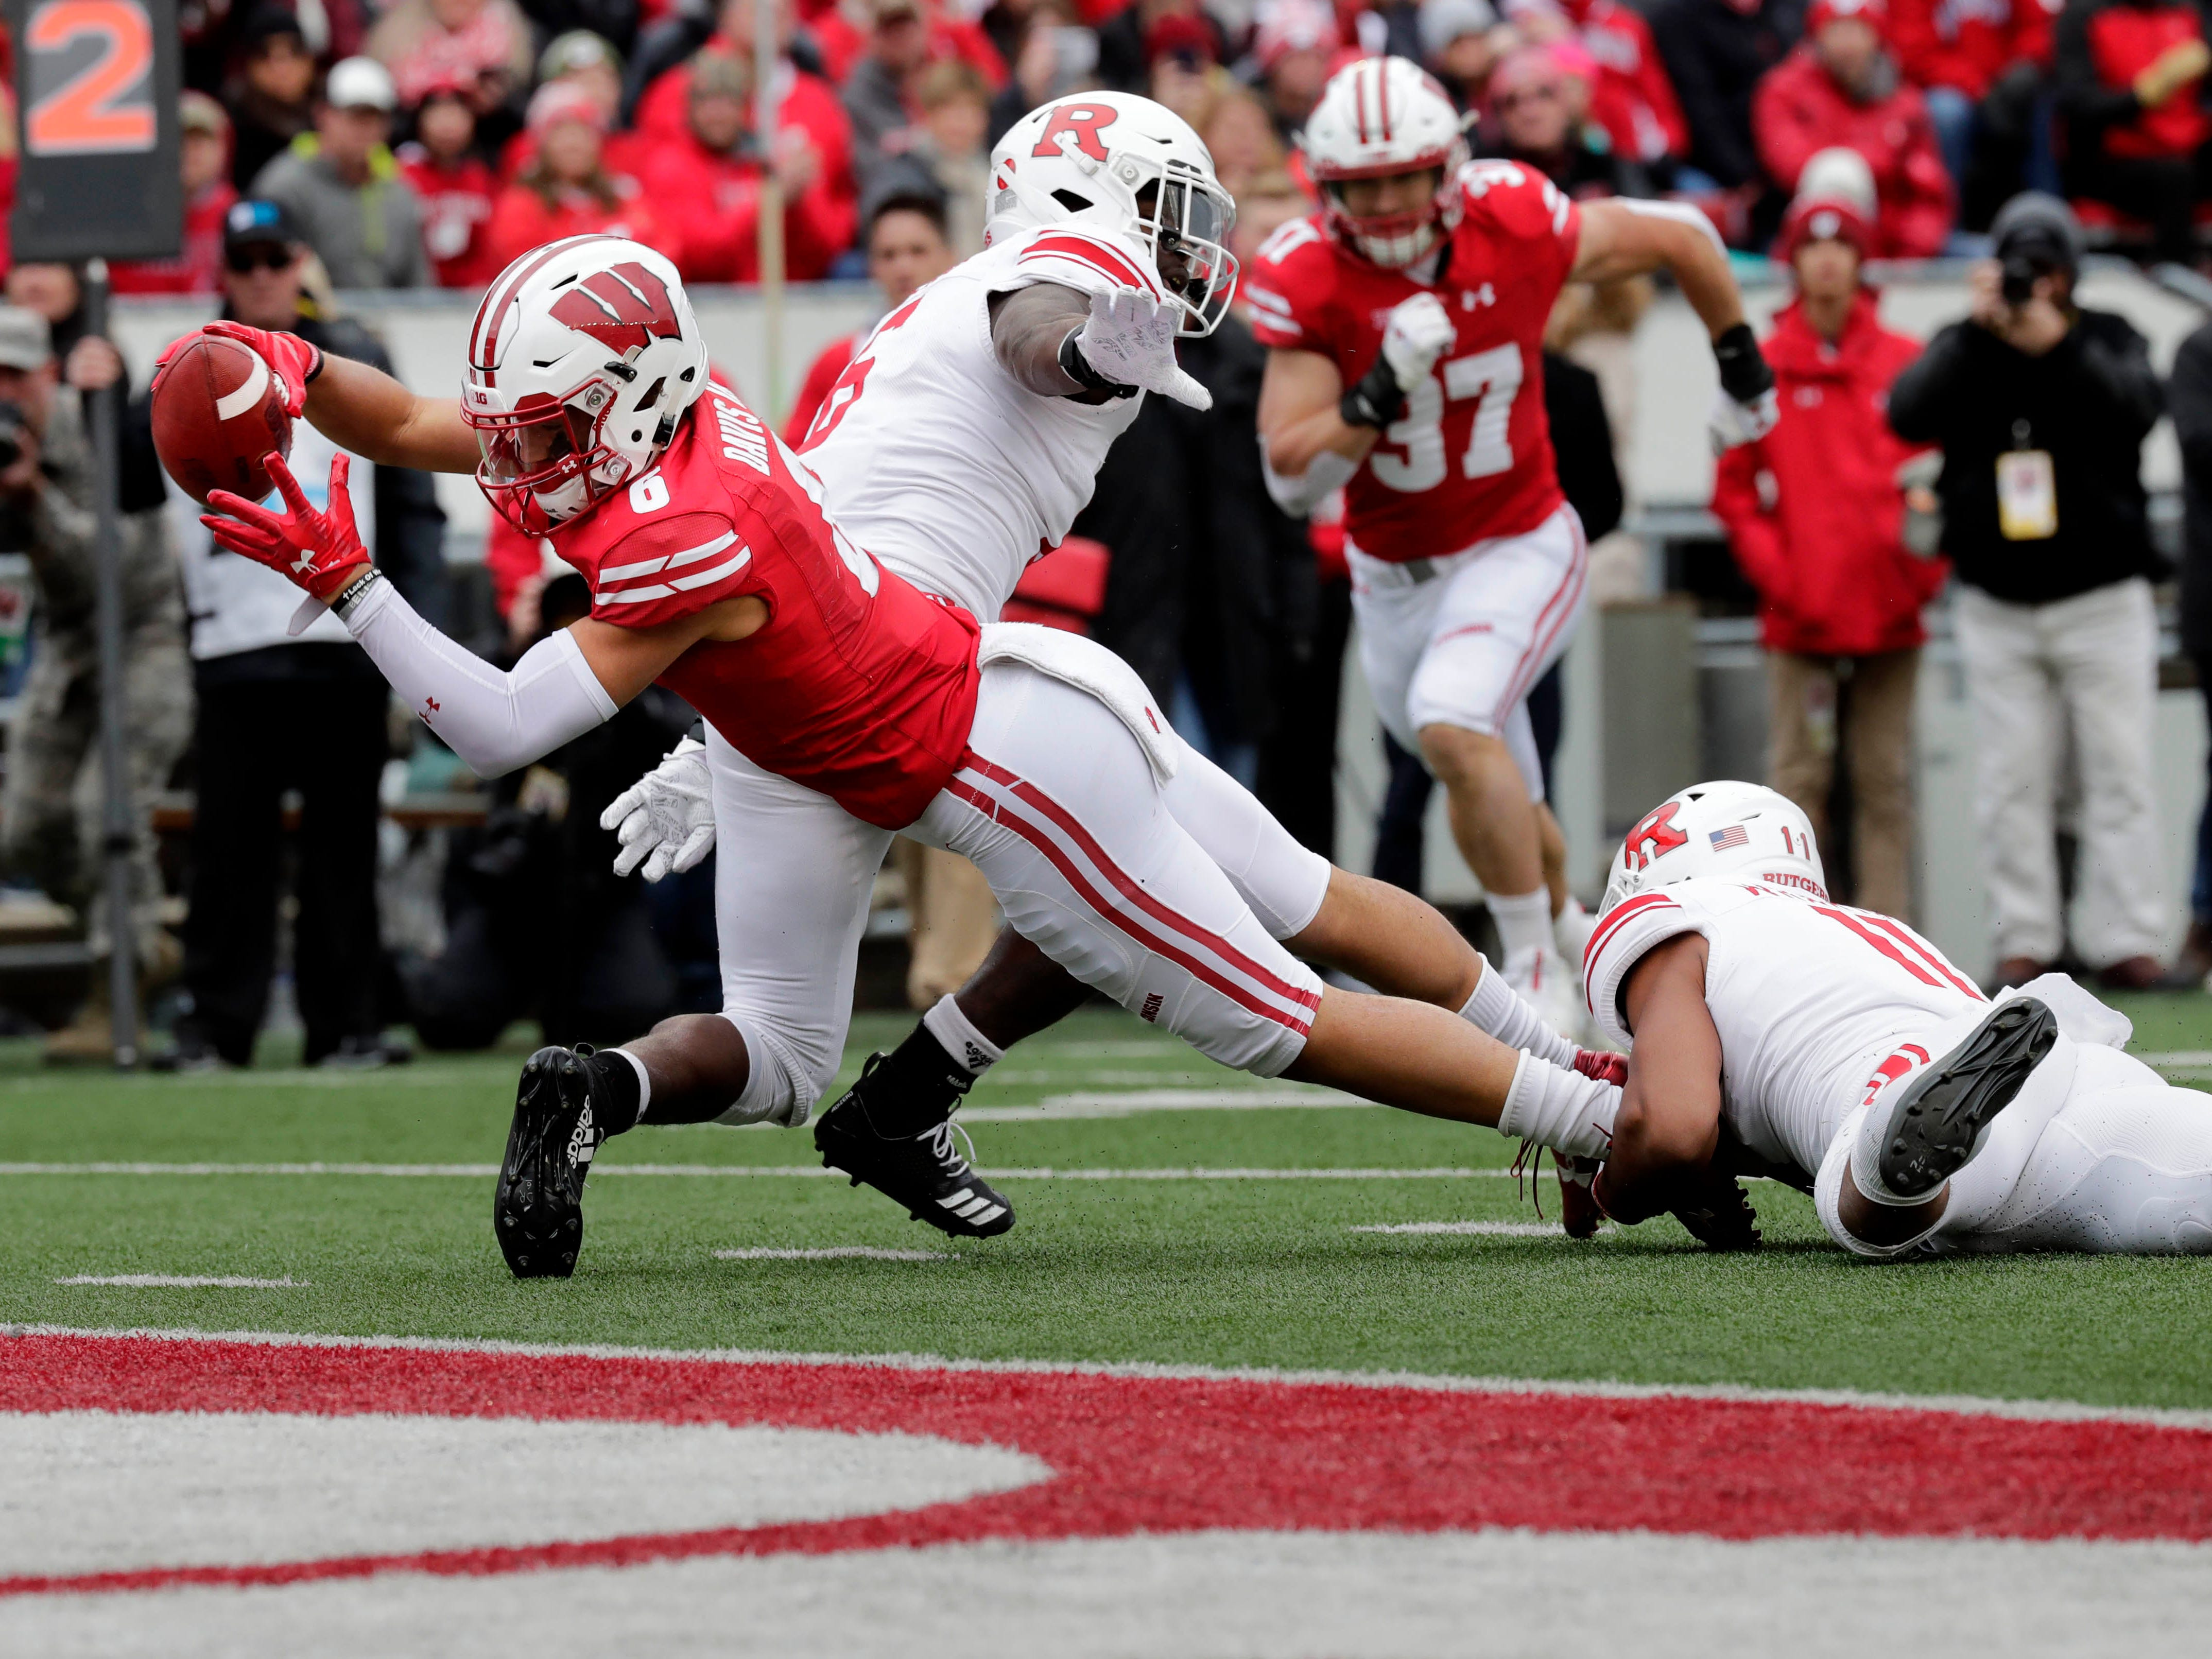 Badgers wide receiver Danny Davis III  stretches for the end zone against Rutgers in the fourth quarter on Saturday.